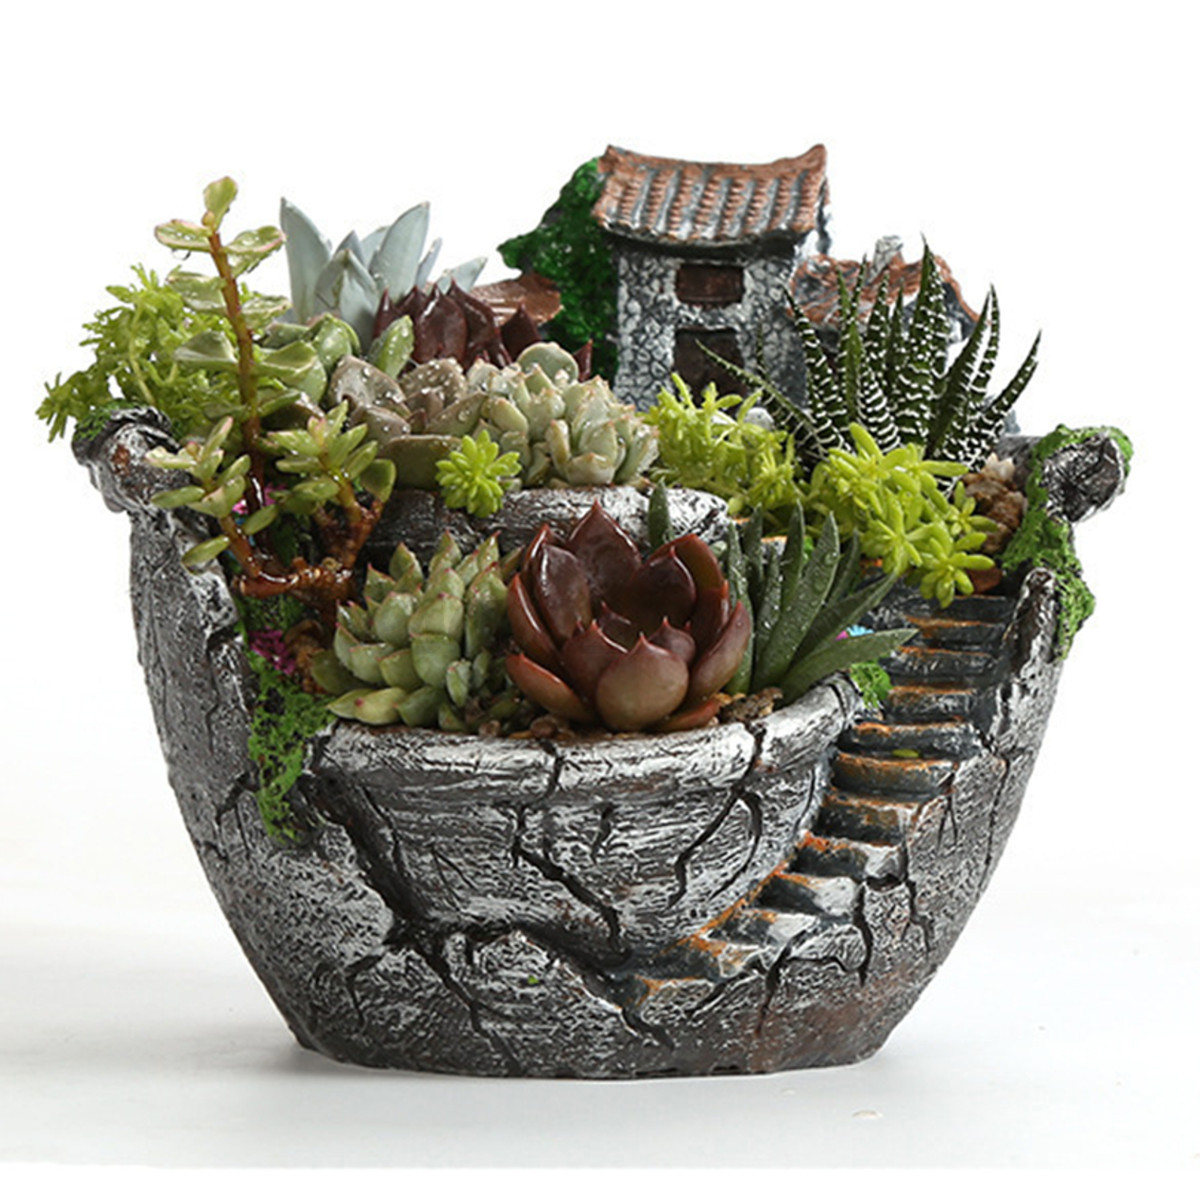 Plant Pot Sale Garden Resin Flower Herb Cactus Succulent Plant Pot Box